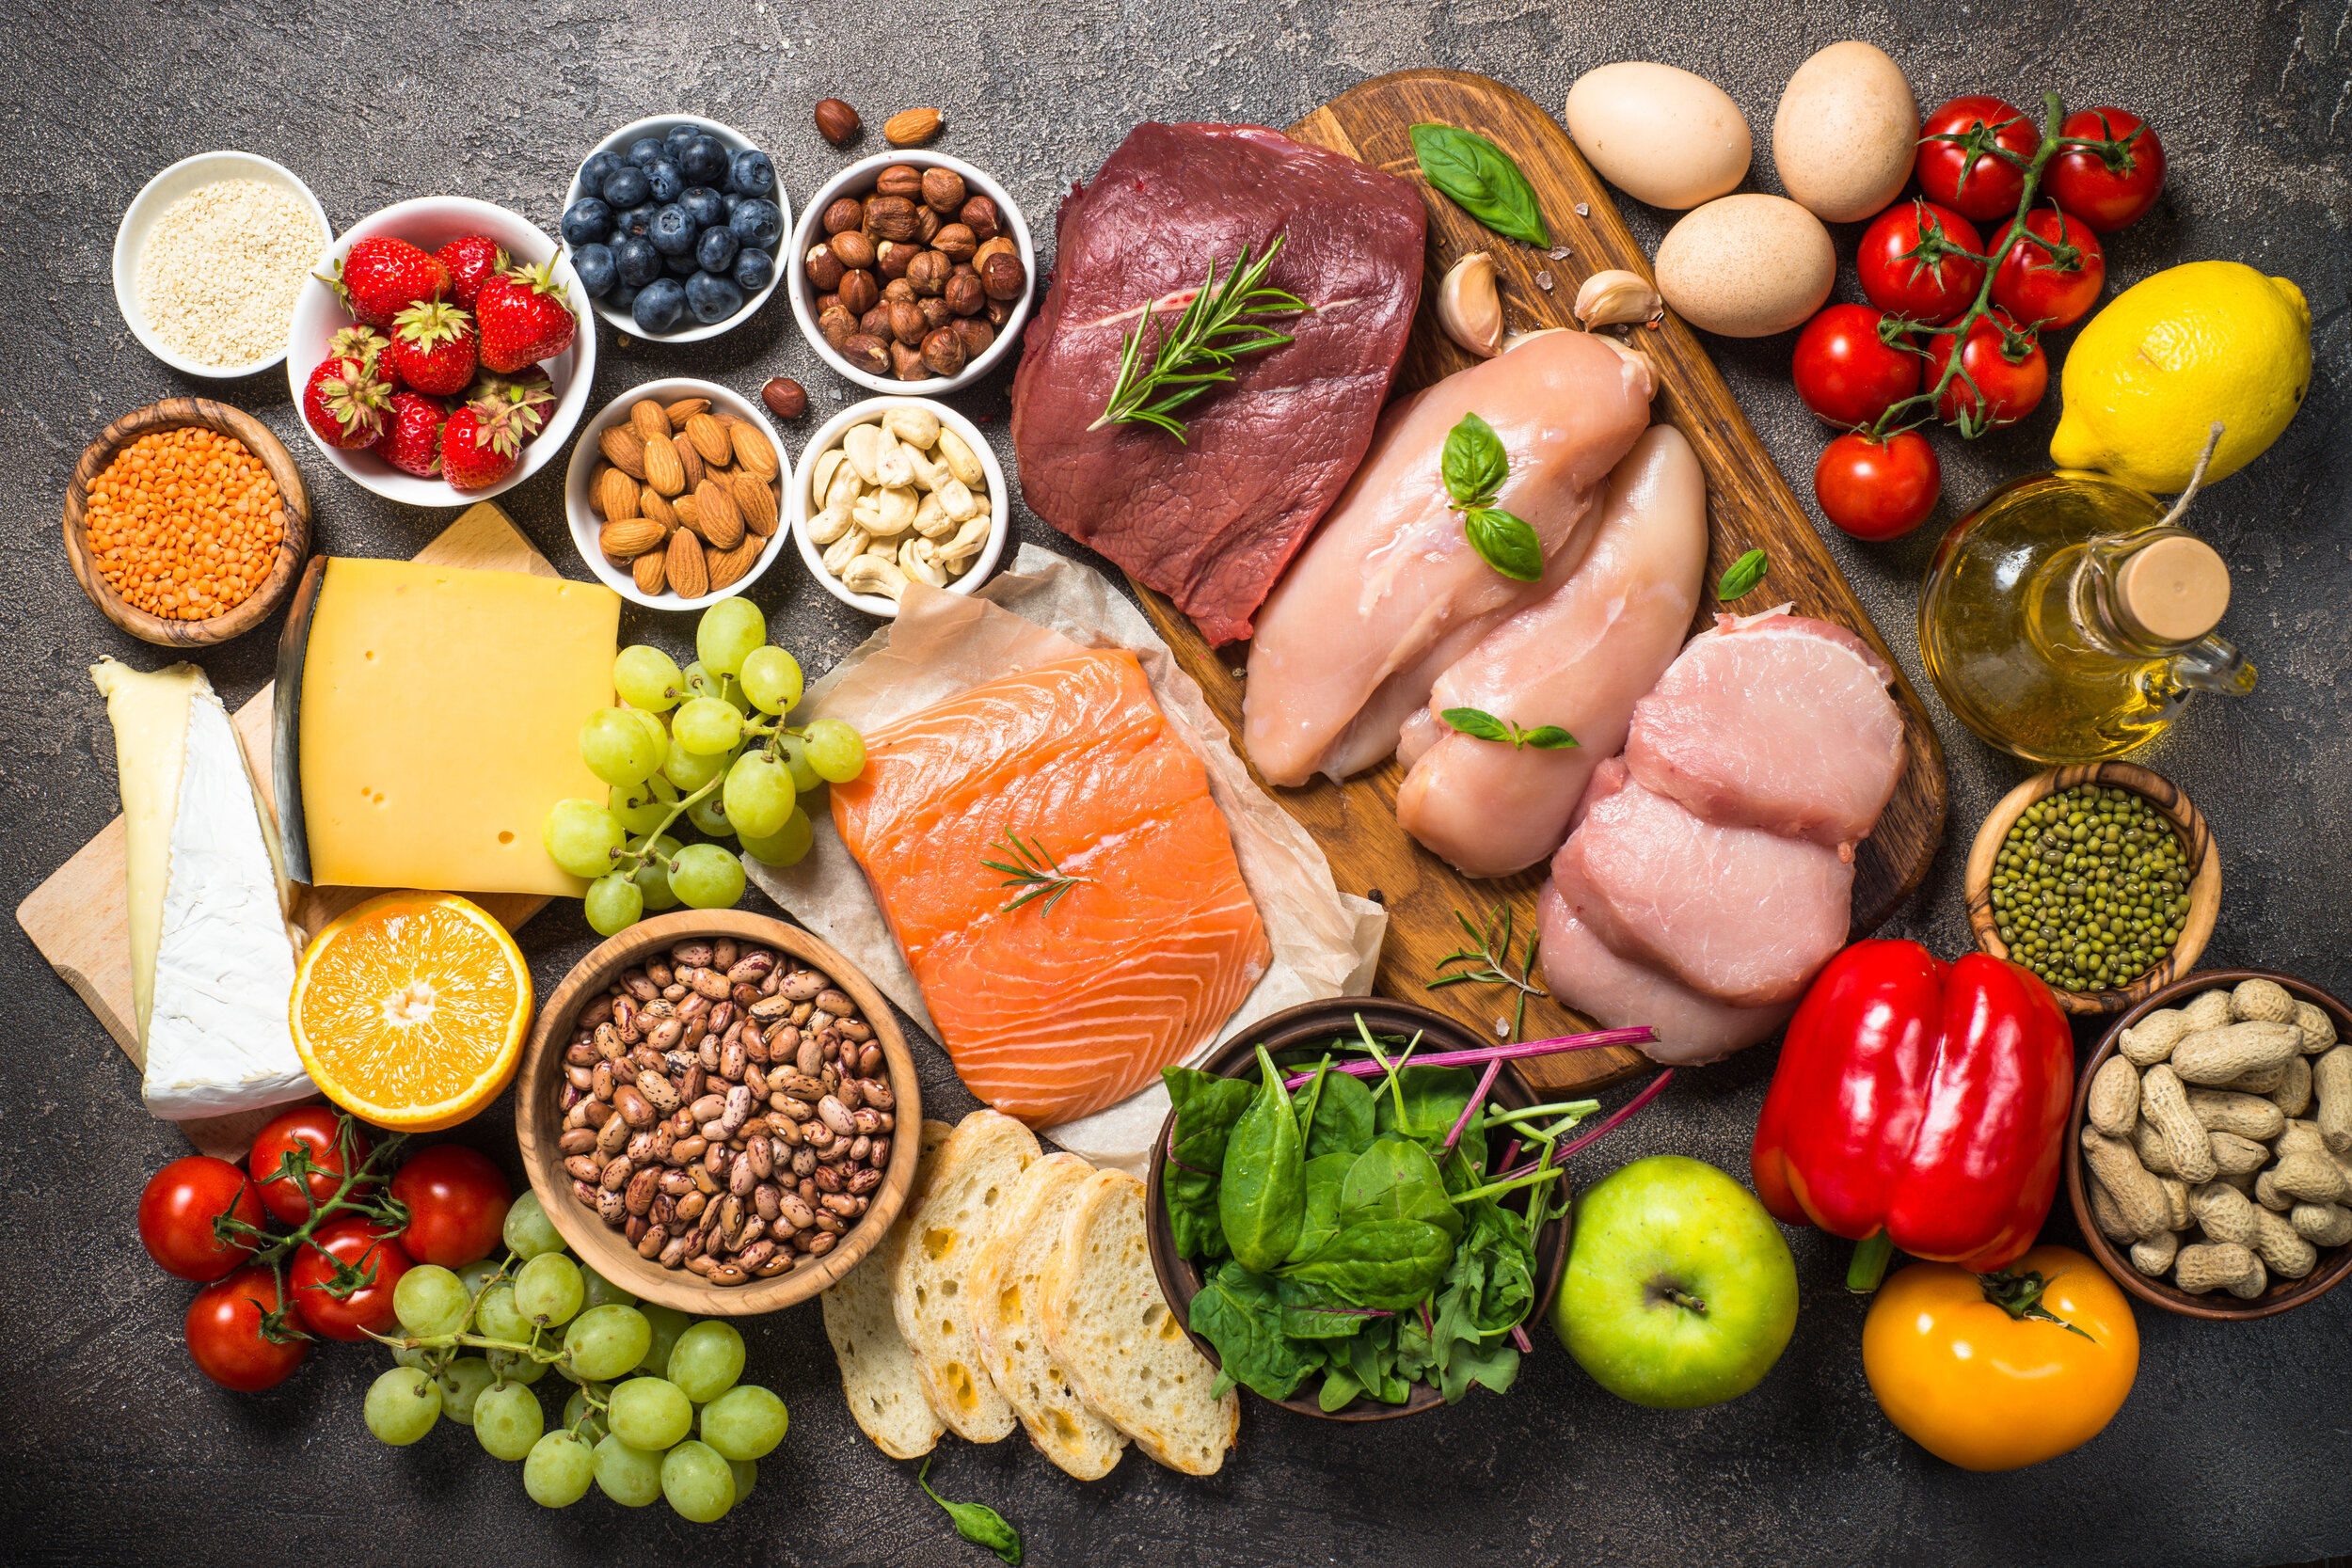 A wide selection of foods to get your body to ketosis fast.  Follow these proven tips and guidelines to get your body into ketosis as quickly as possible and stay in ketosis. Skyrocket your weight loss by avoiding common mistakes. #keto #weightloss #week1 #ketoforbeginners #startingketo #ketoexplained #losingweight #loseweightquickly